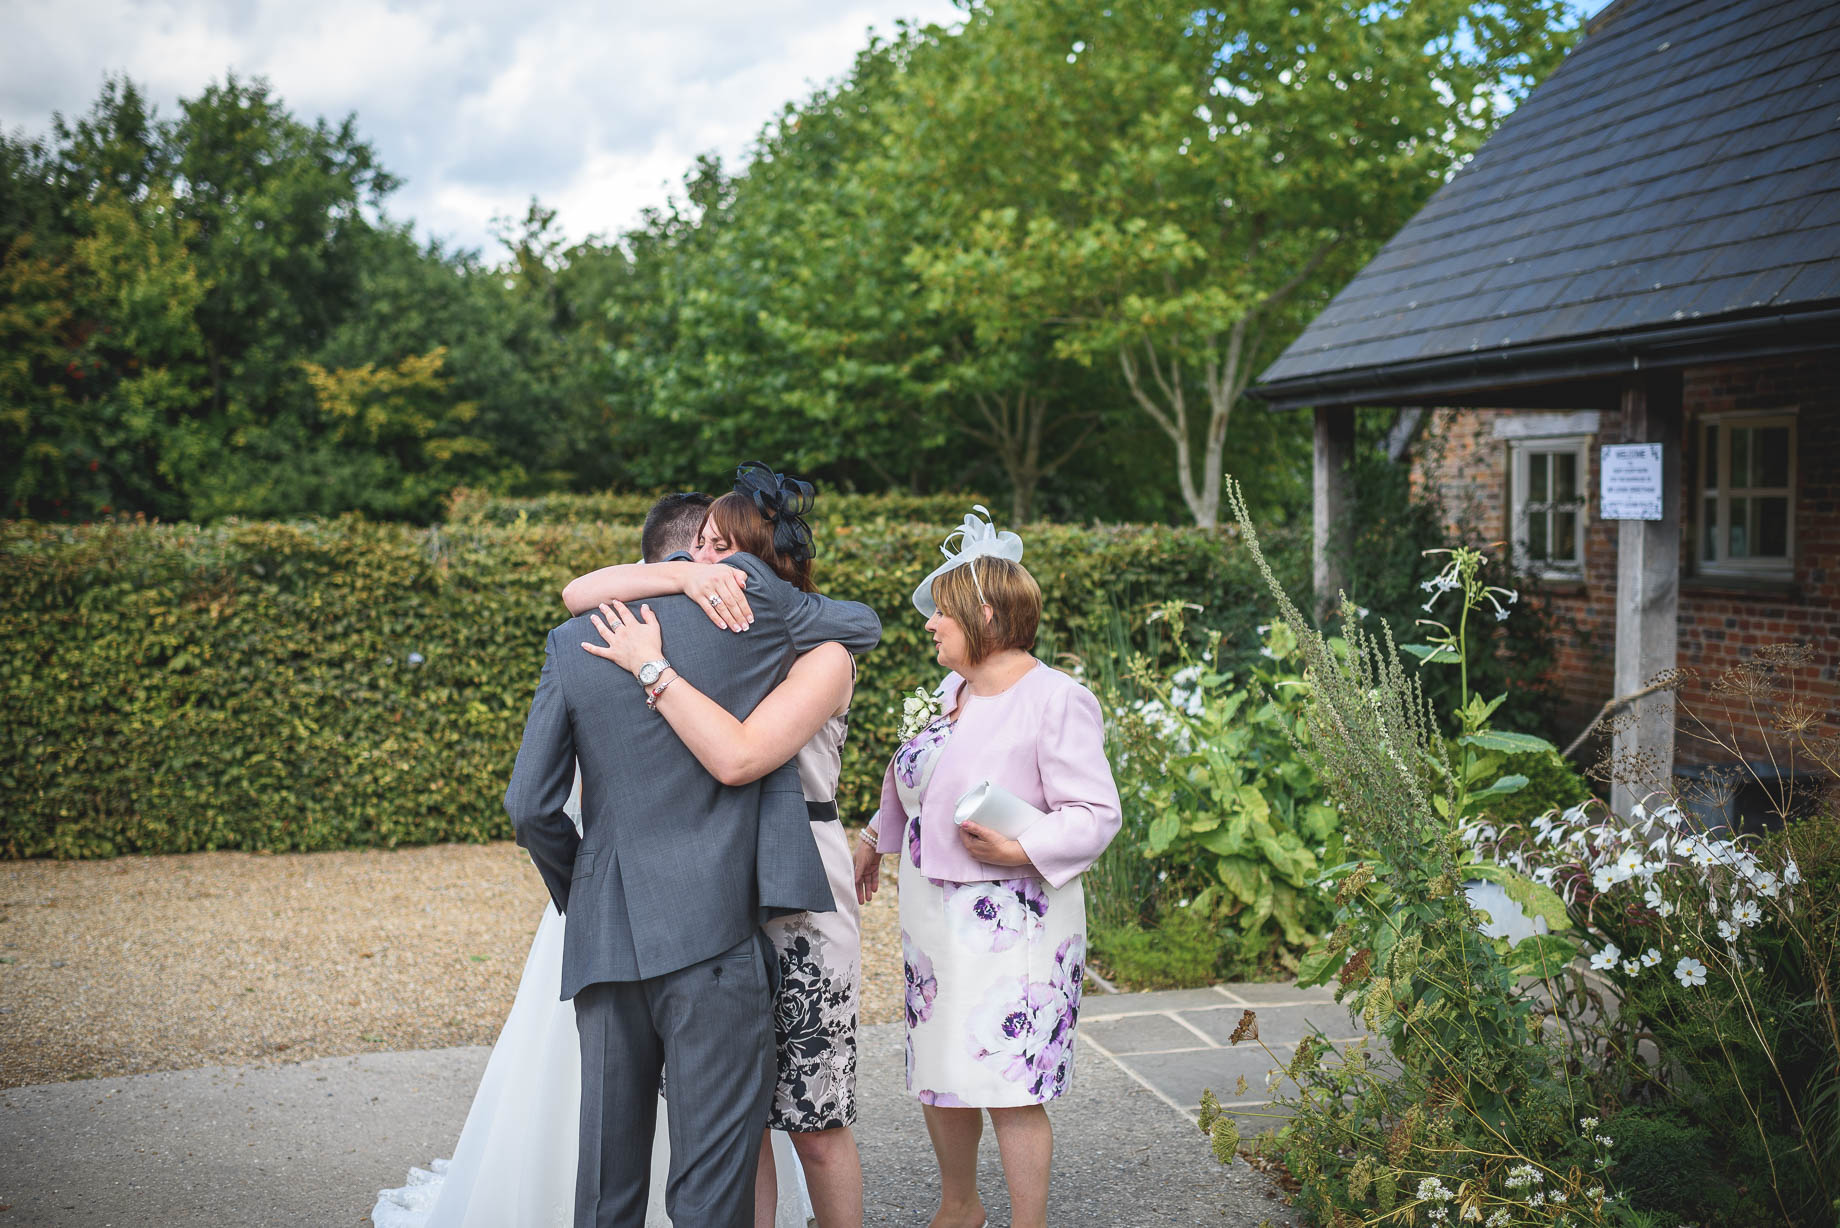 Bury Court Barn wedding photography - Guy Collier - Kirsty and Lewis (70 of 150)